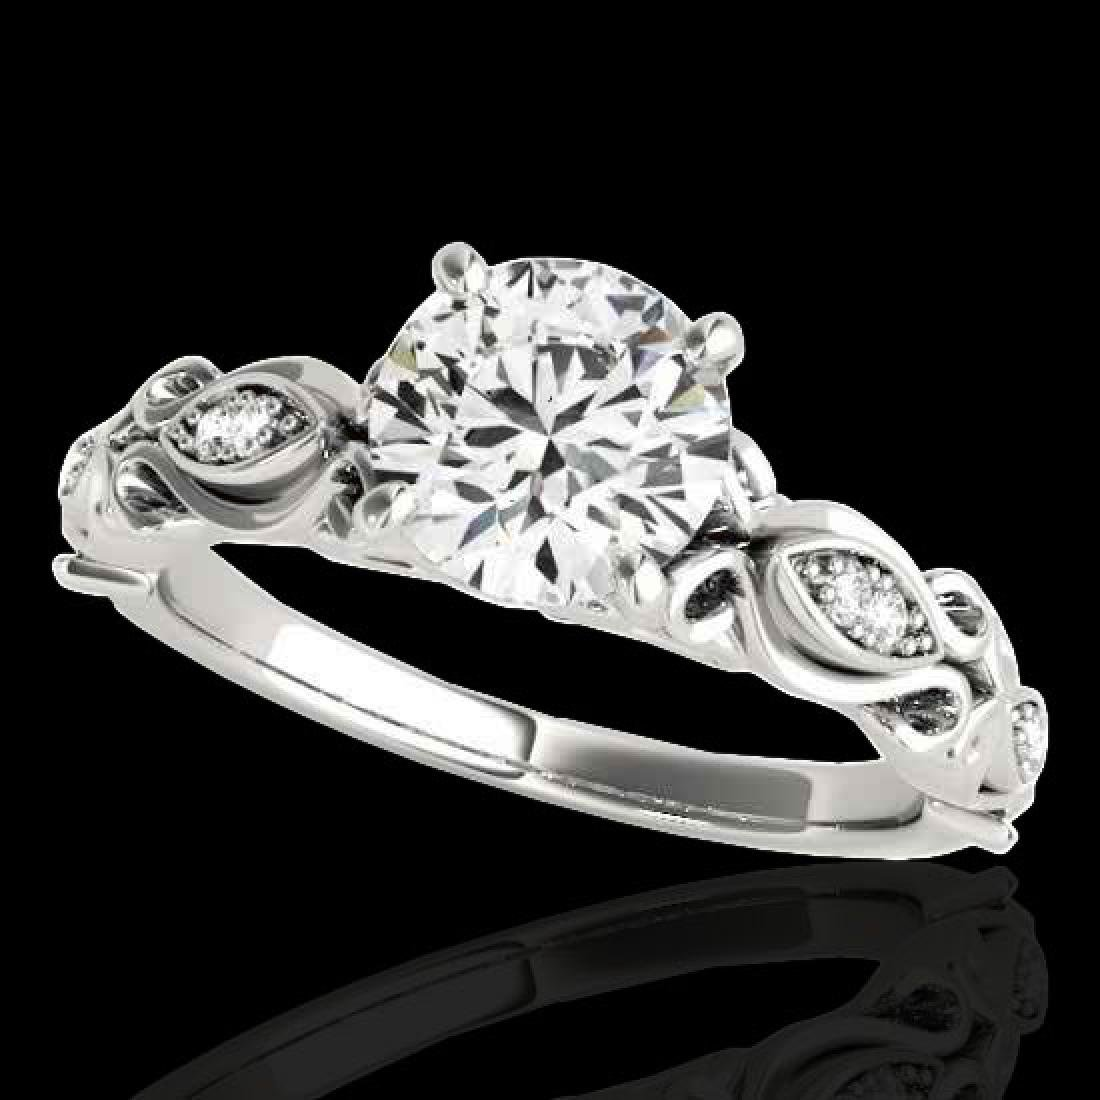 1.1 CTW H-SI/I Certified Diamond Solitaire Antique Ring